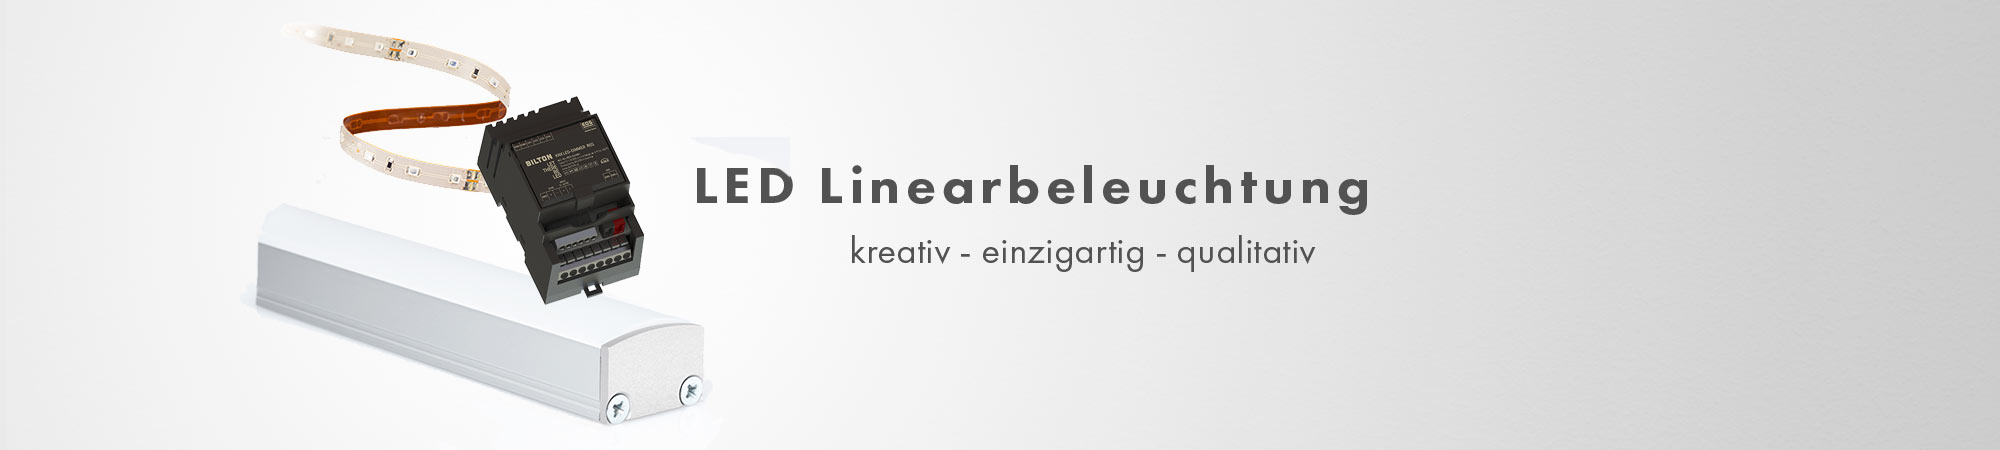 LED Linearbeleuchtung